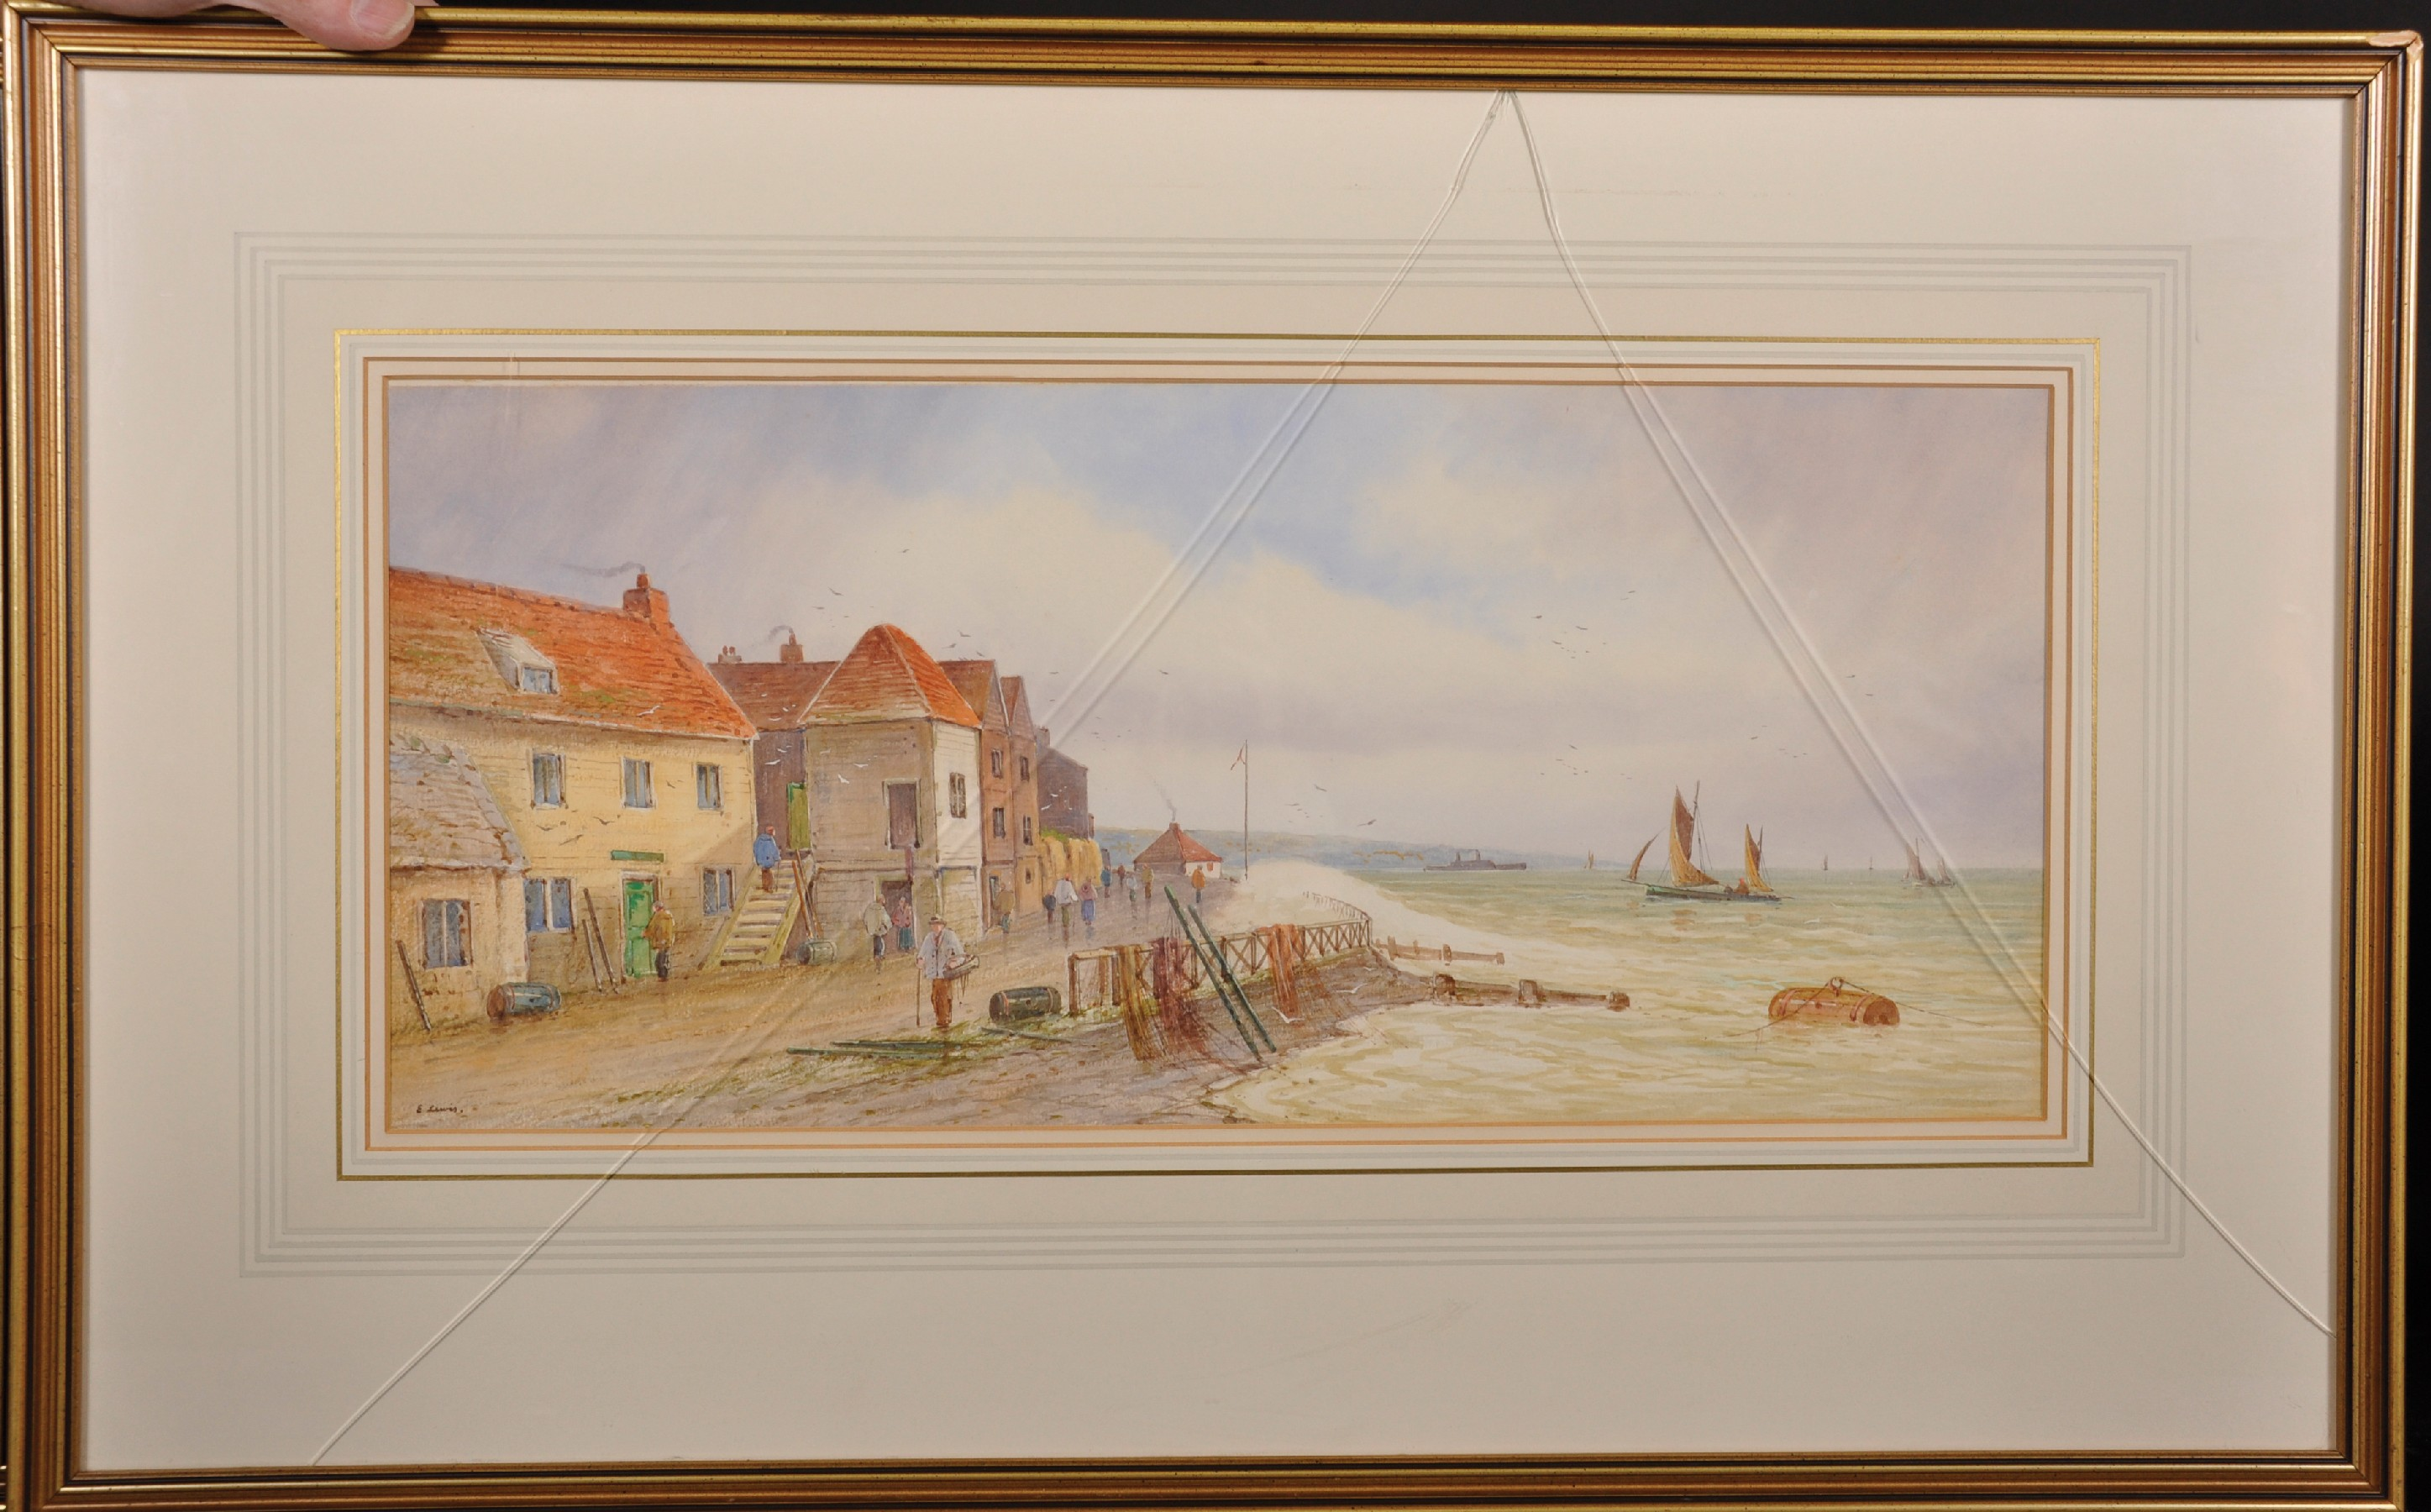 E... Lewis (19th - 20th Century) British. A Coastal Scene with Shipping, and Figures by Houses, - Image 4 of 7